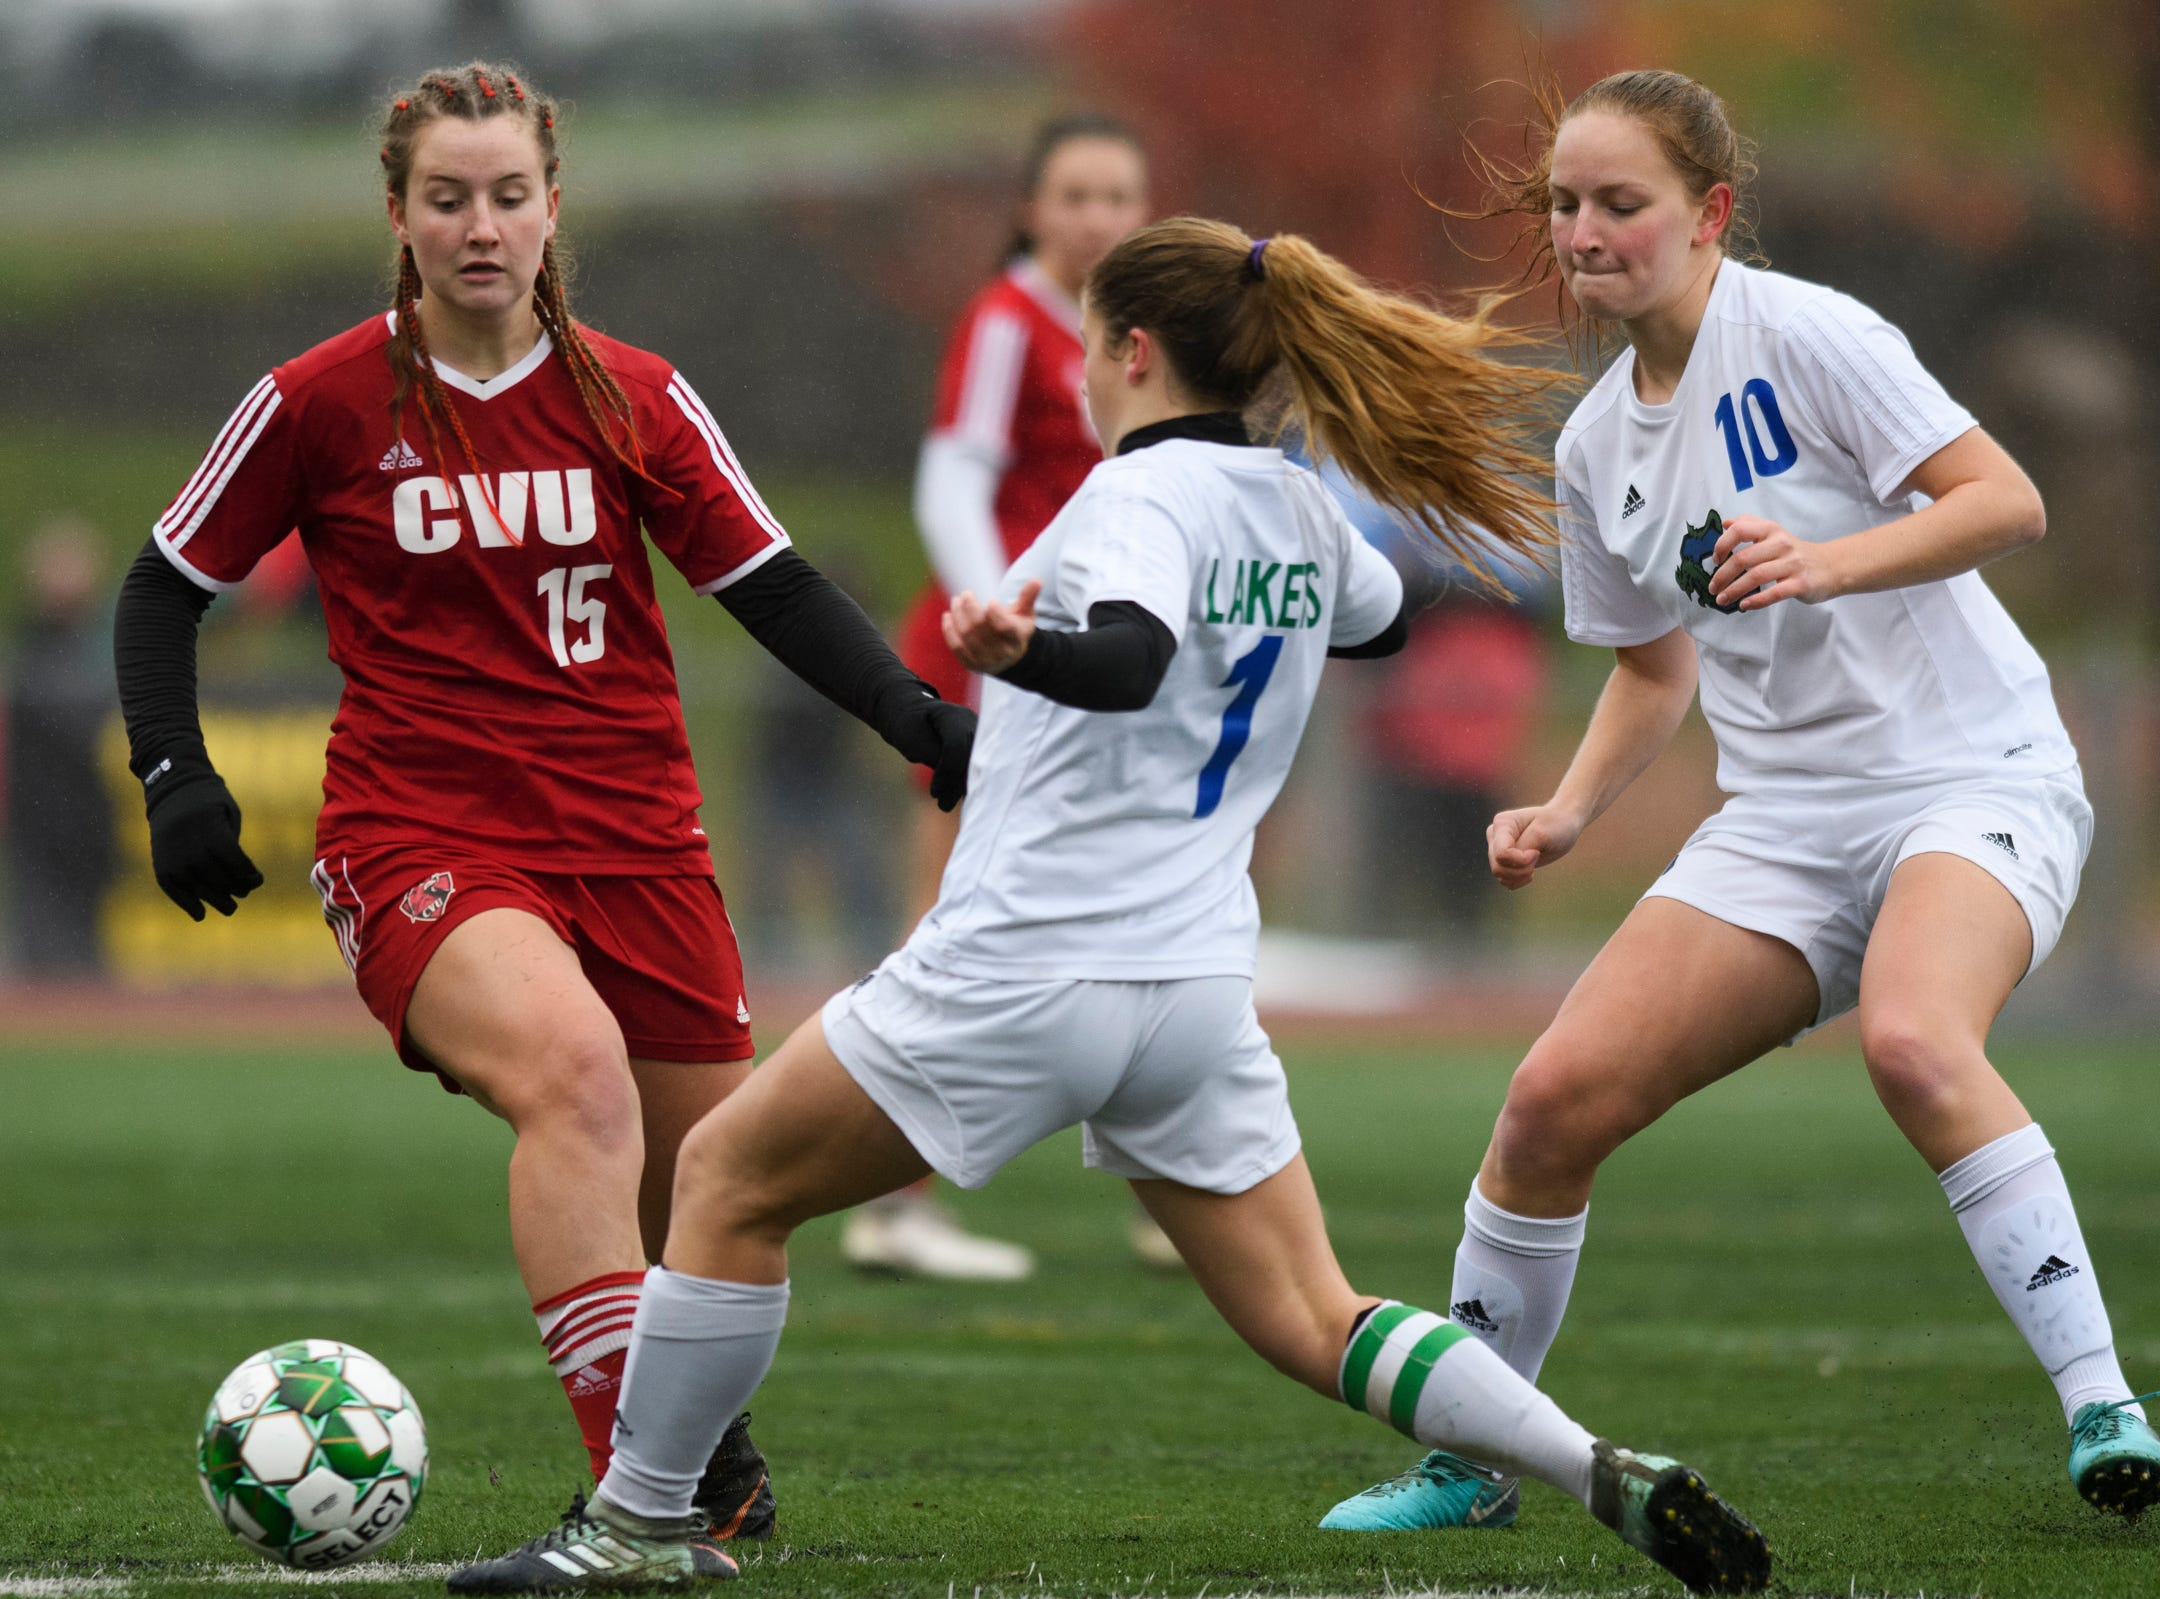 Colchester's Madison Finelli (1) battles for the ball with CVU's Olivia Morton (15) during the division I girls soccer championship game between the Colchester Lakers and the Champlain Valley Union Redhawks at Buck Hard Field on Saturday morning November 3, 2018 in Burlington.